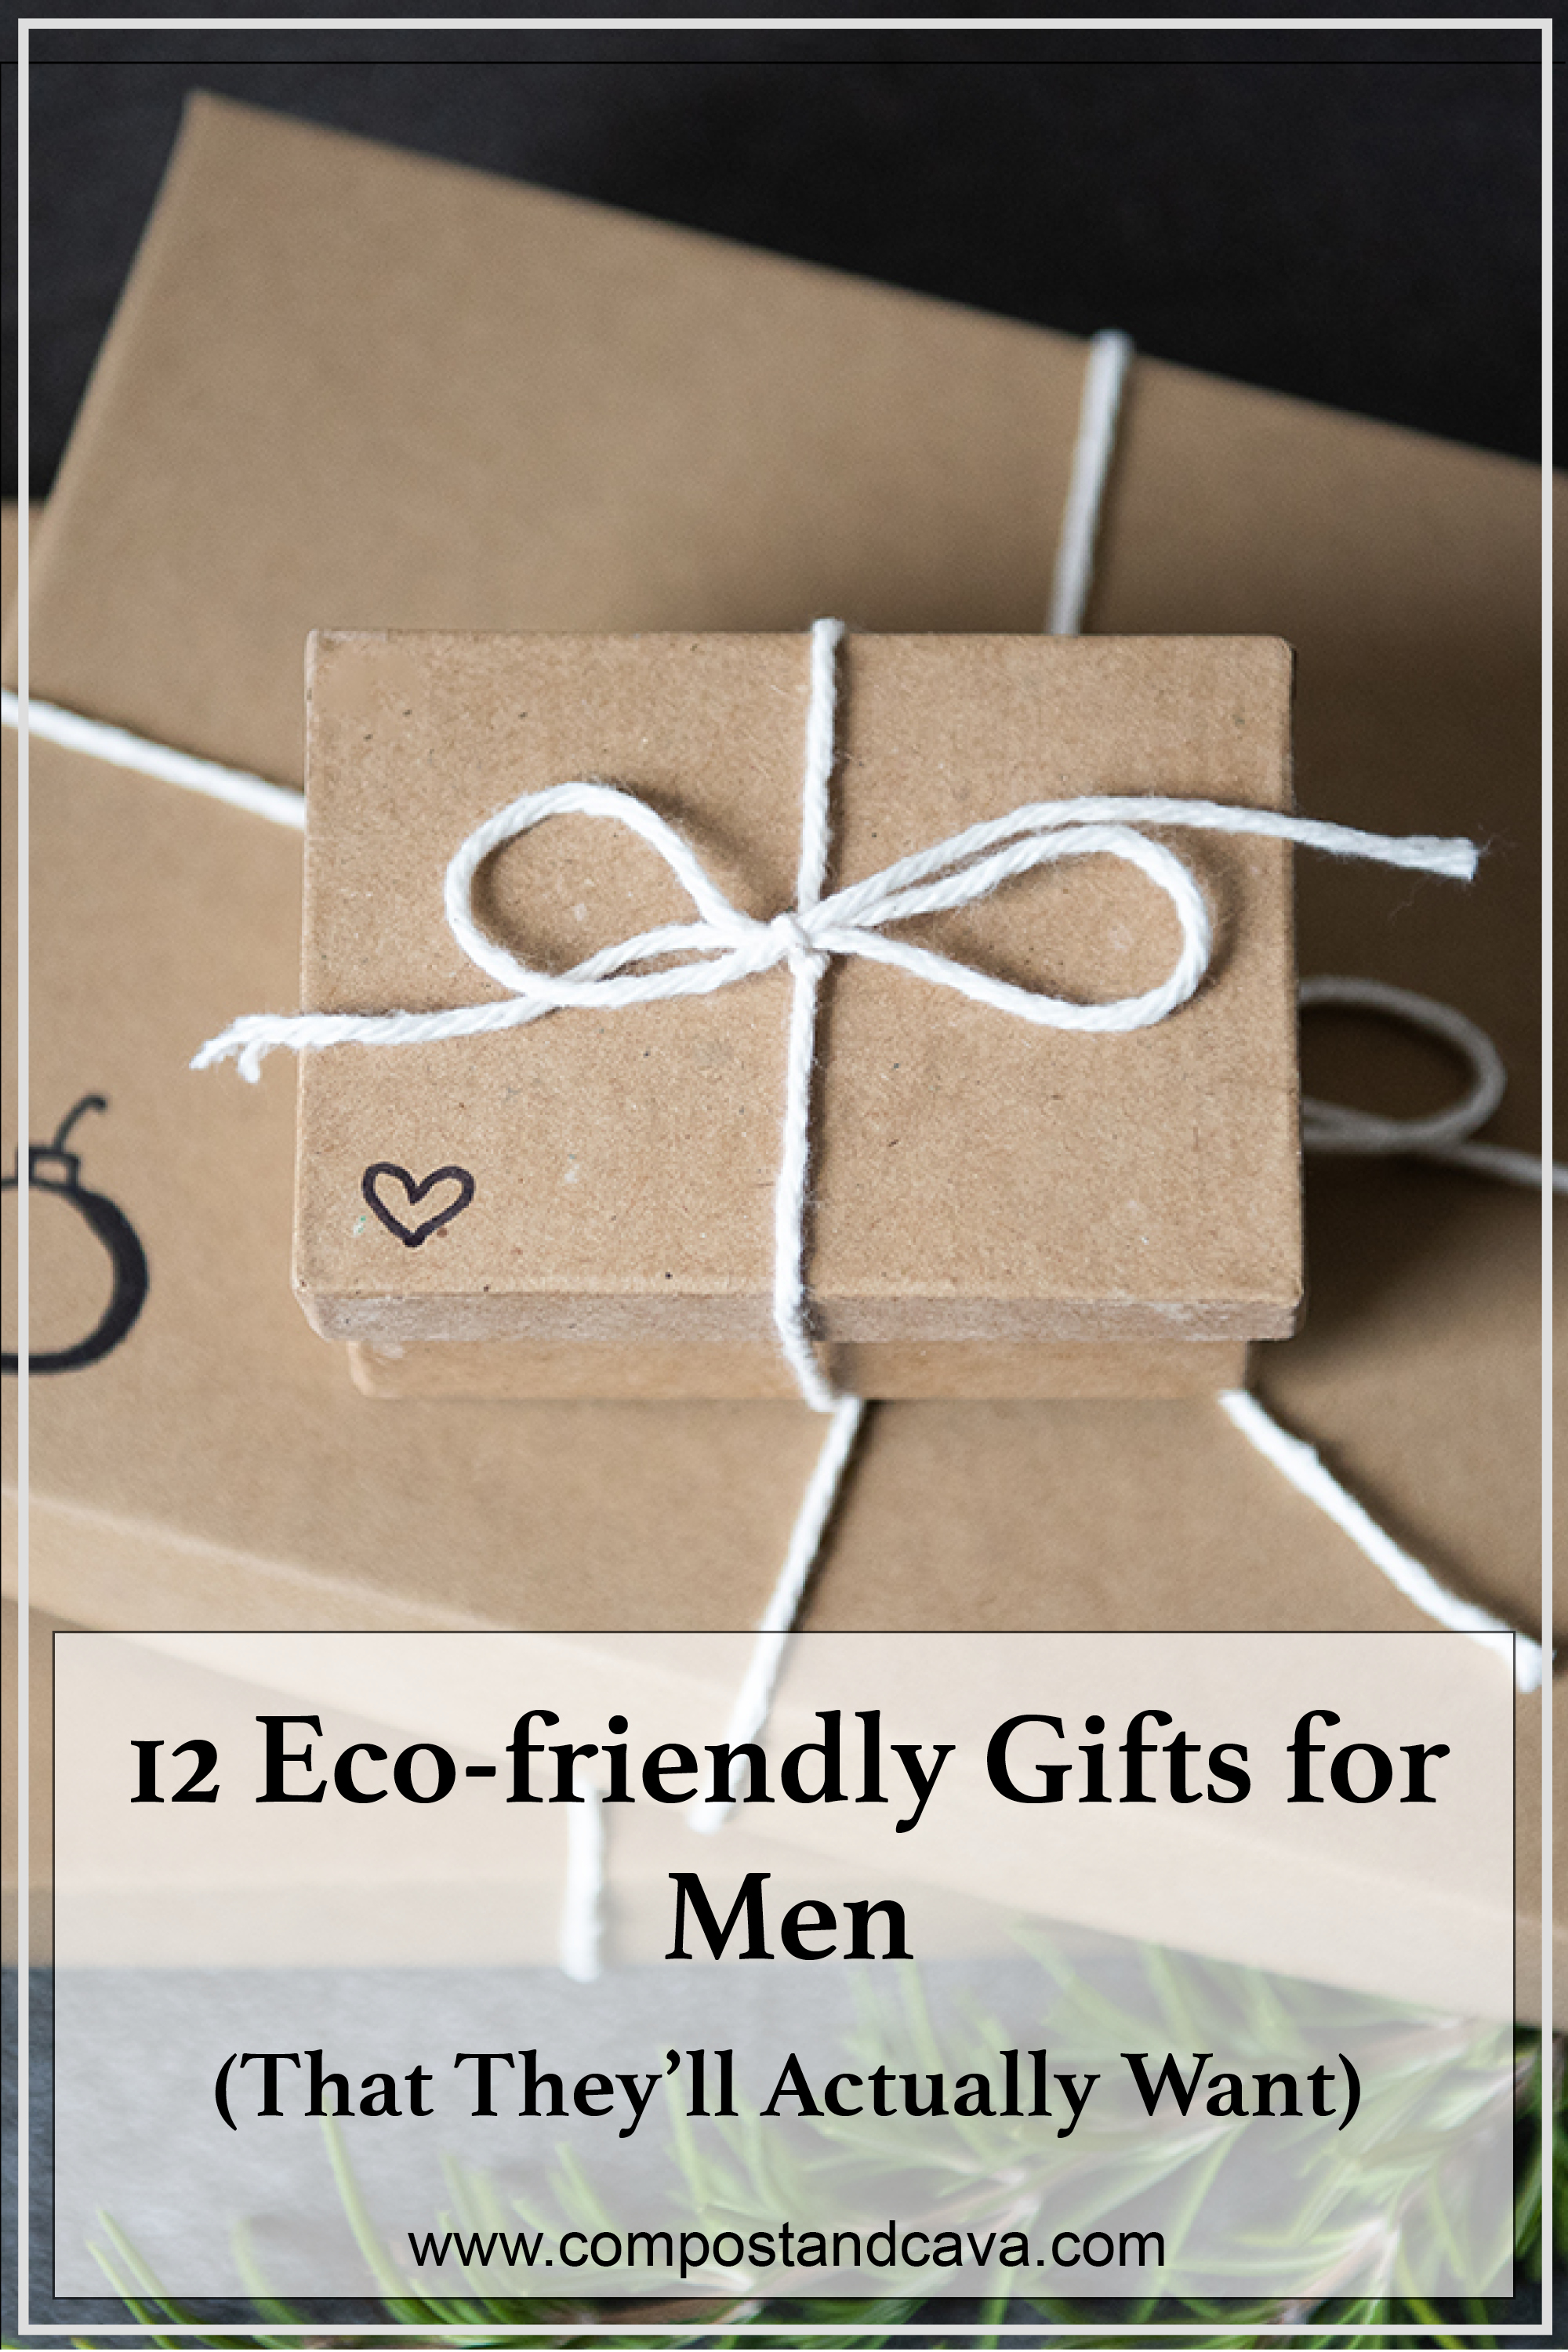 12 Eco-friendly gifts for men